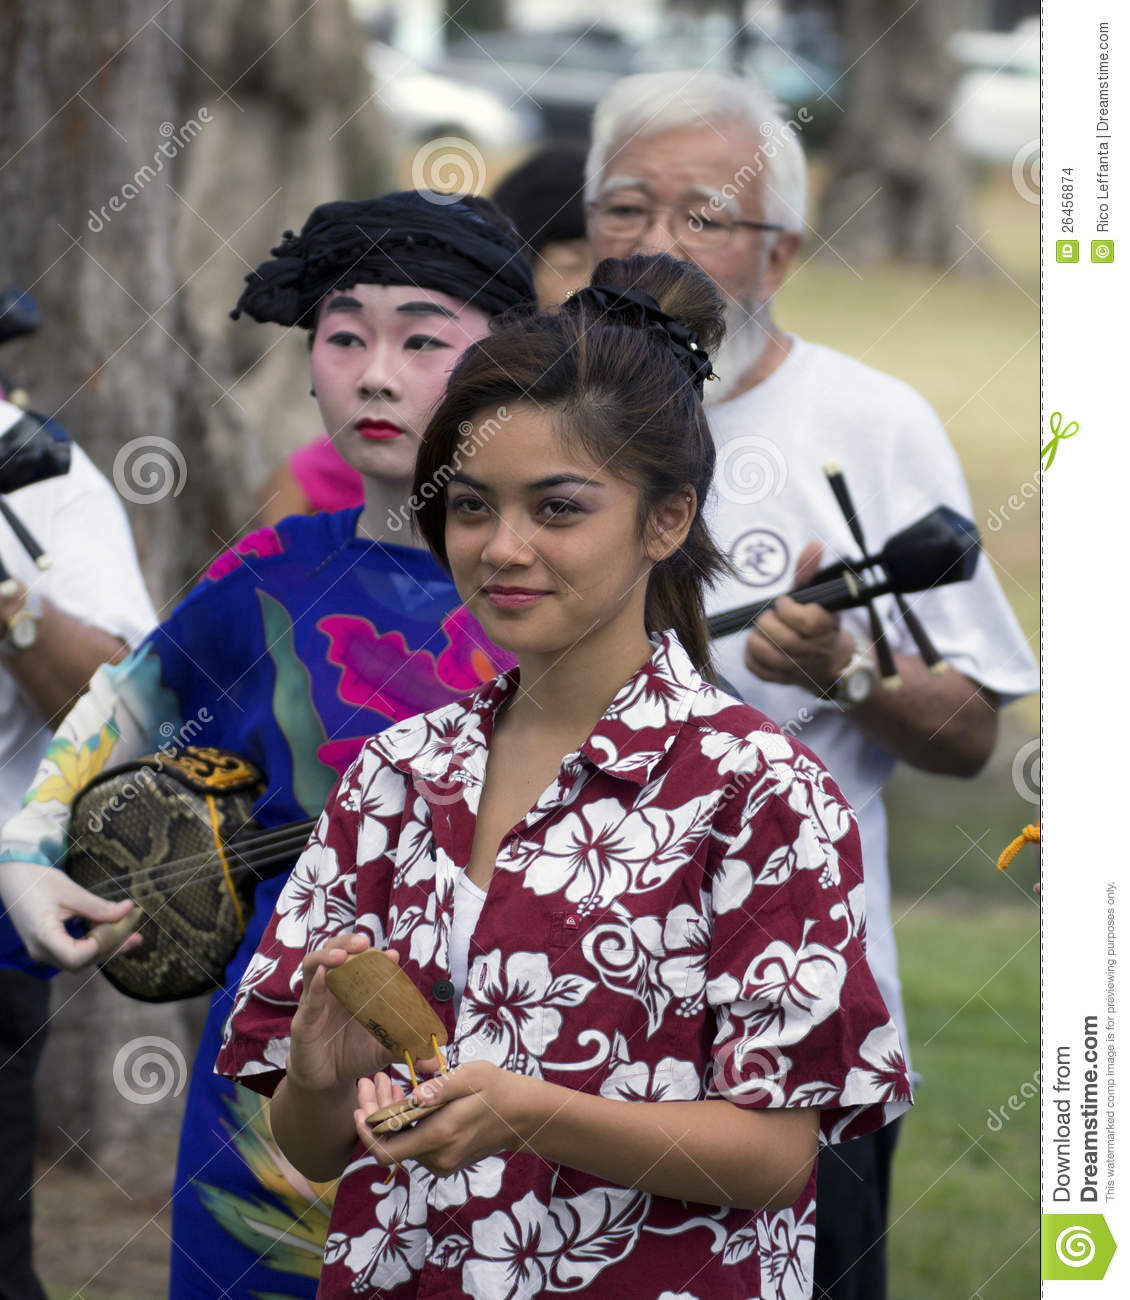 okinawan music makers editorial stock image image of 30th 26456874